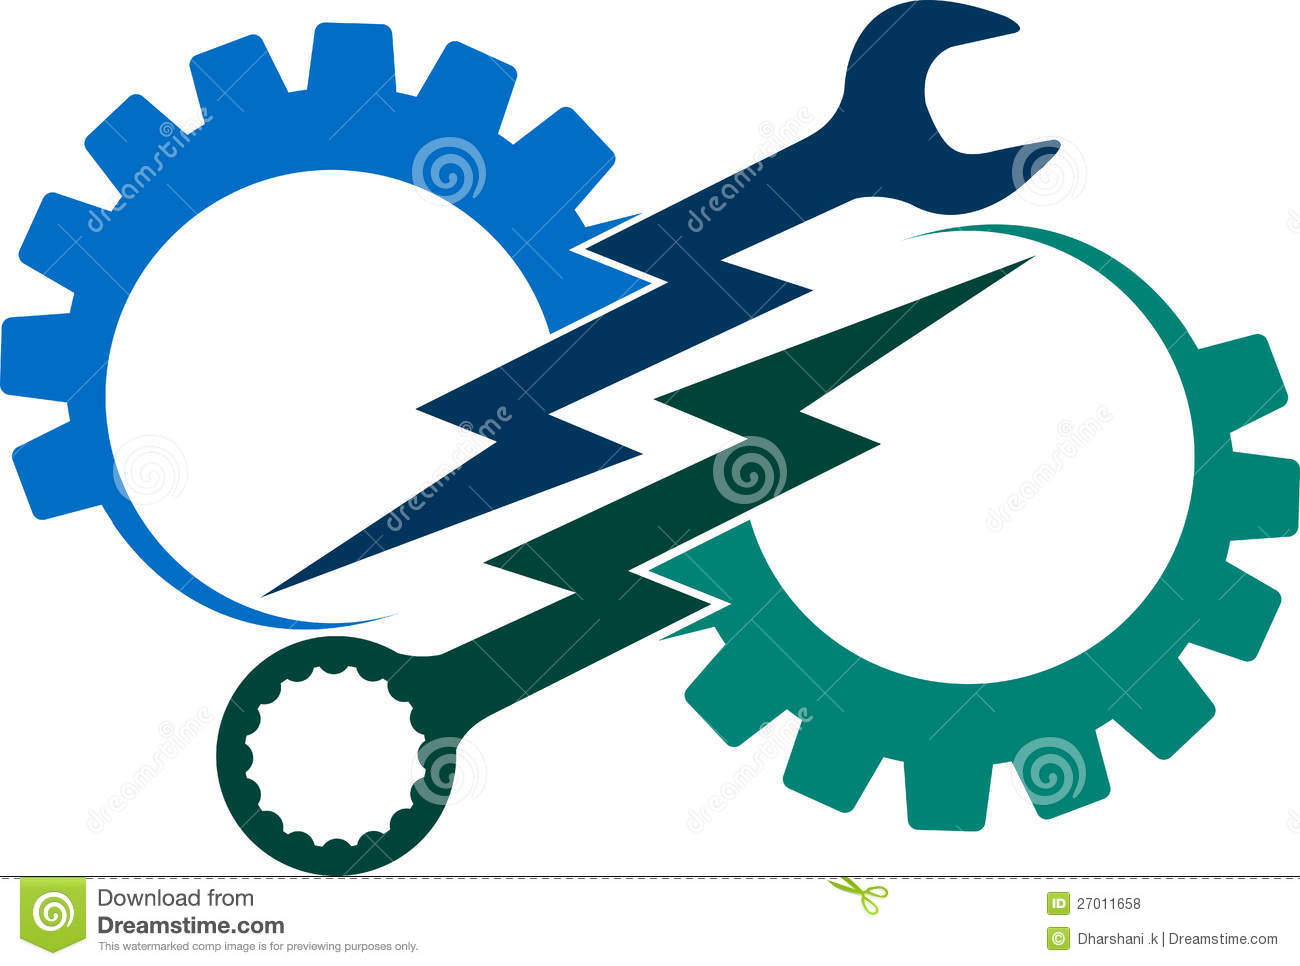 Electrical Engineering Logos And Symbols